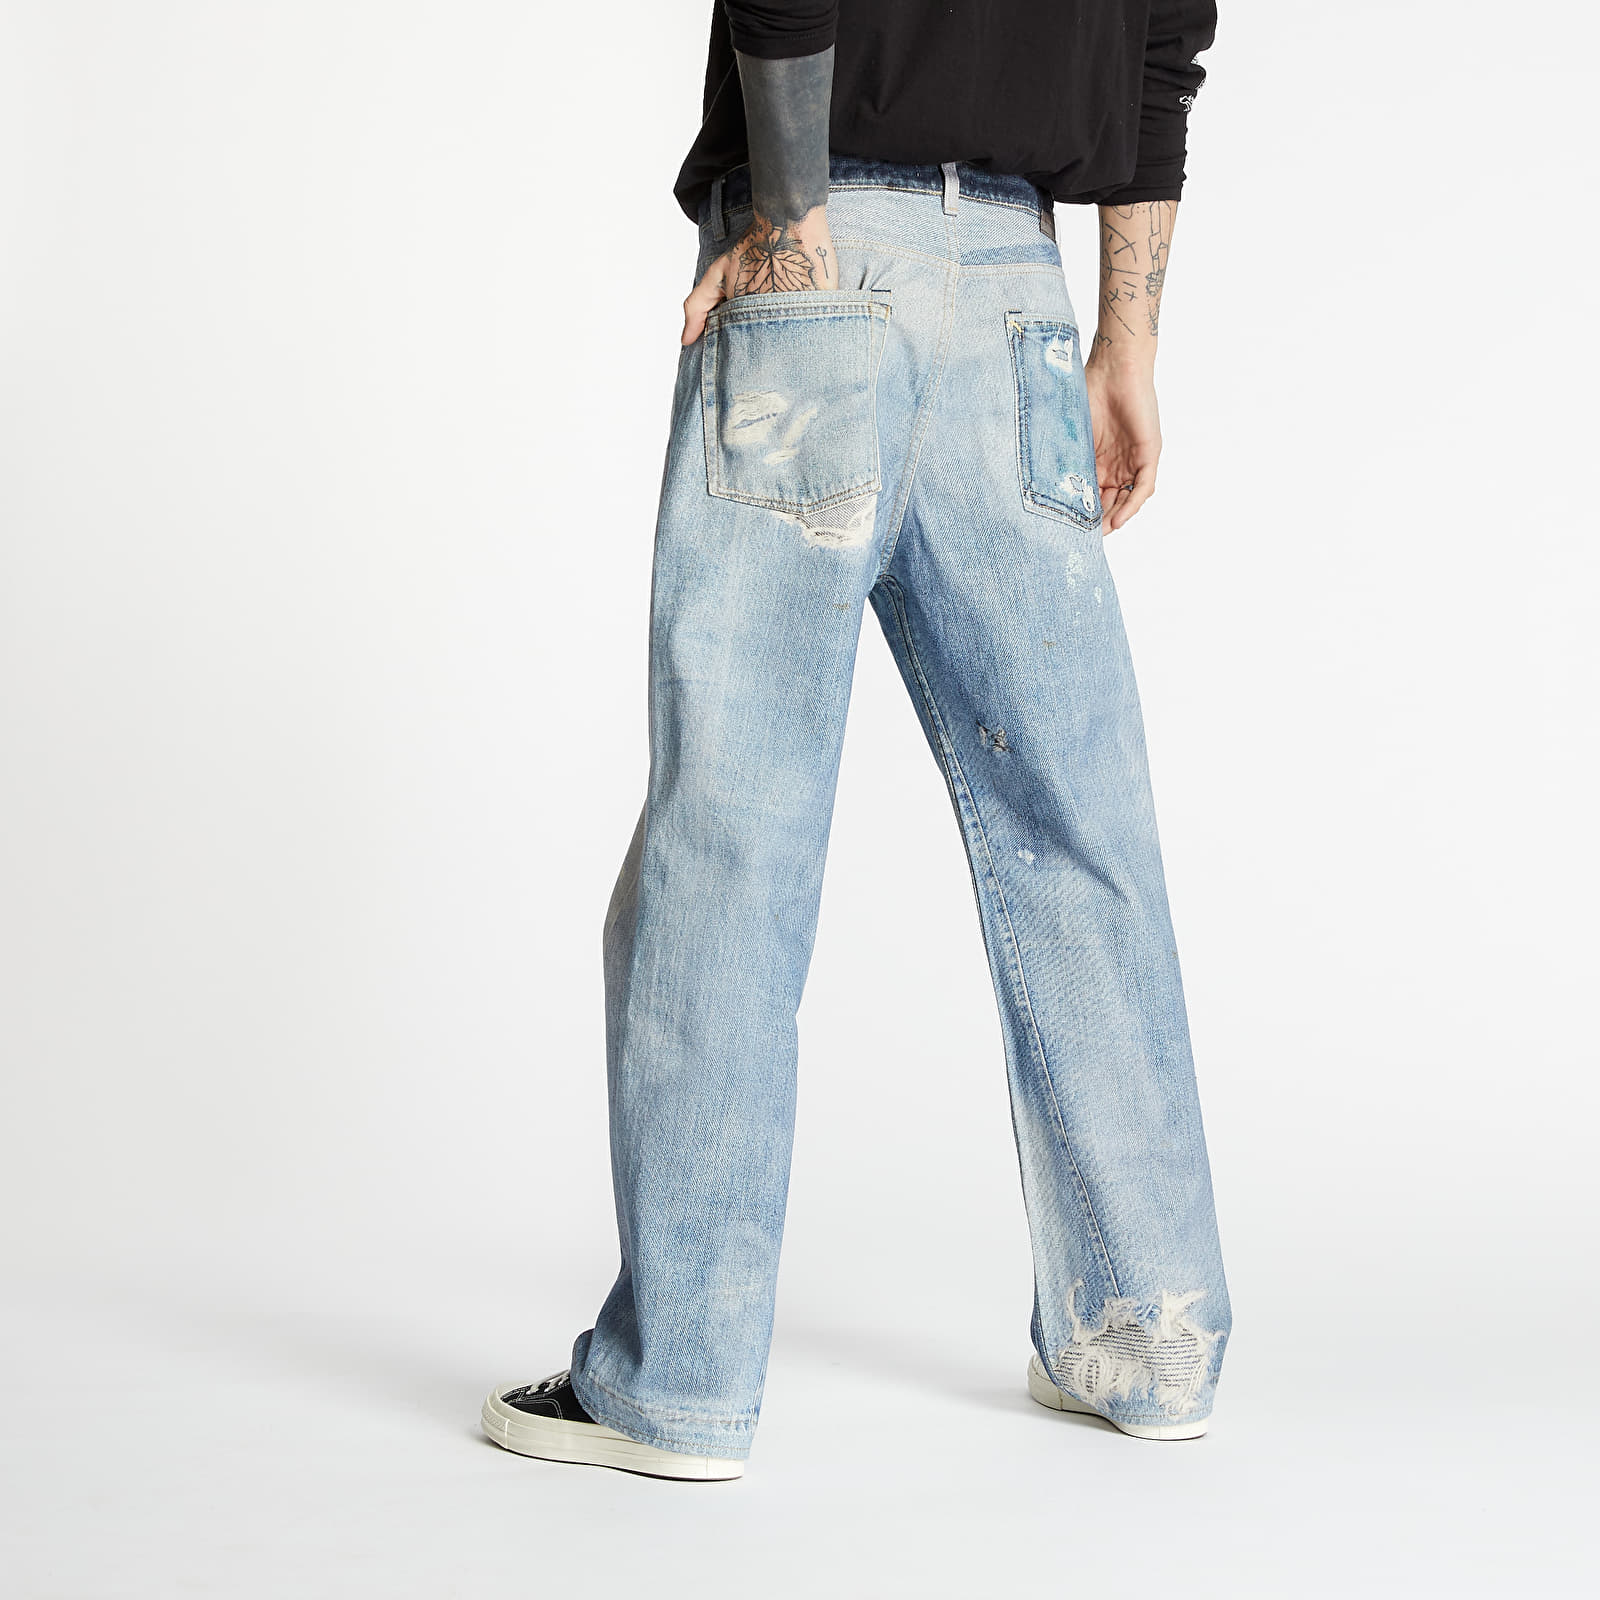 Pants and jeans OUR LEGACY Digital Denim Print Blue